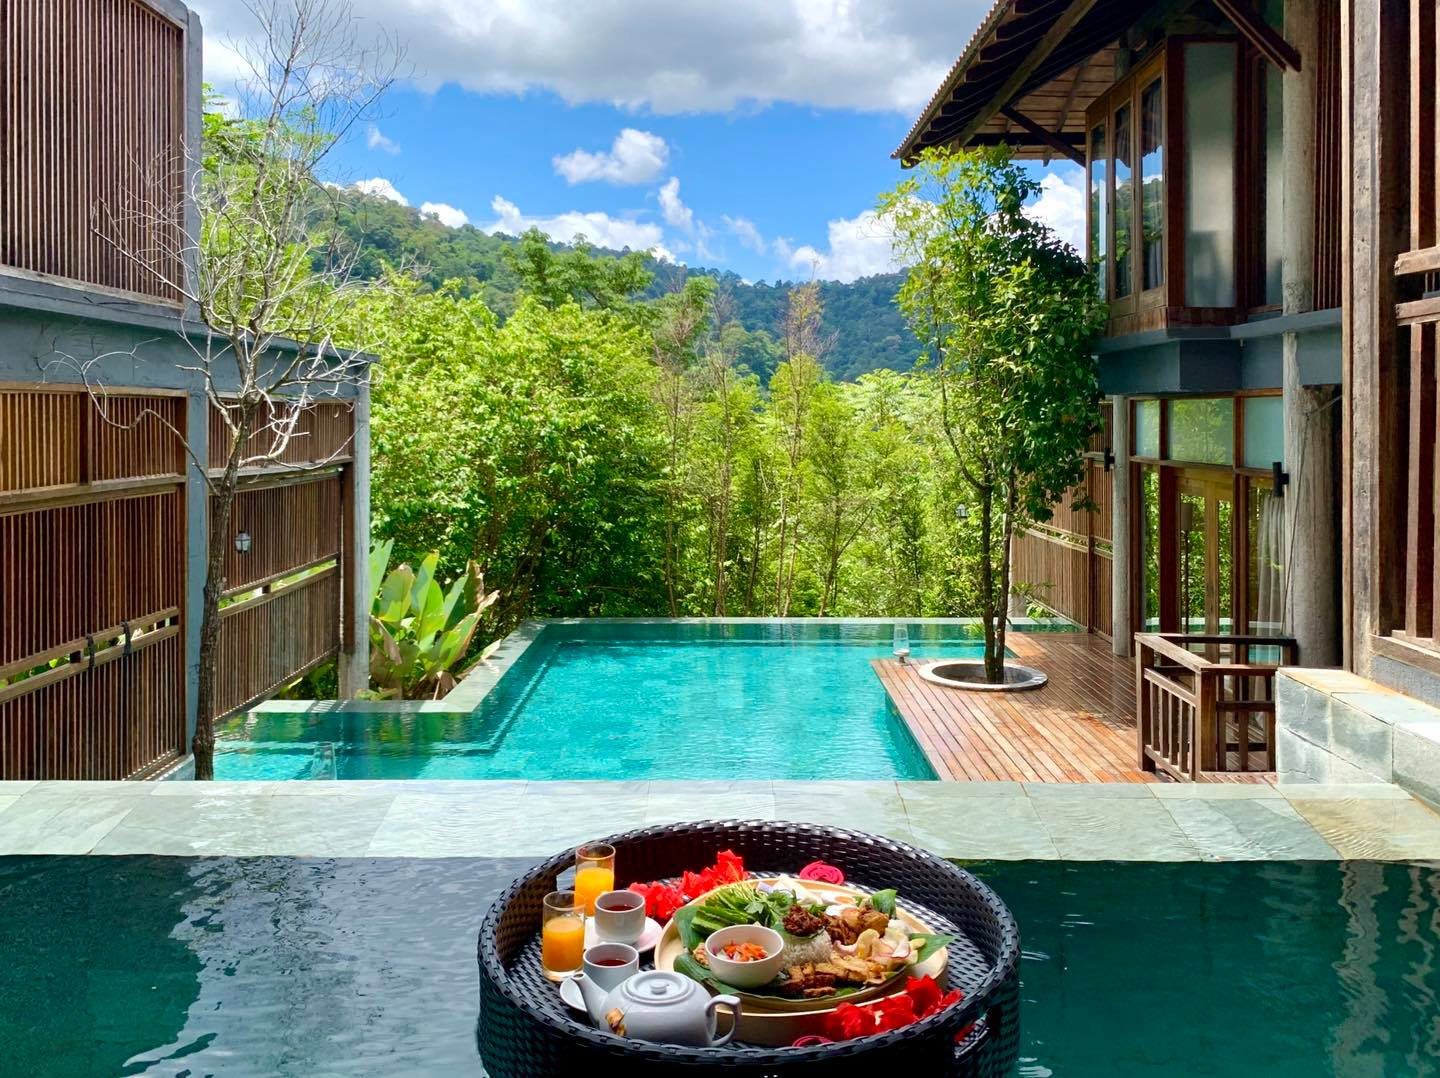 10 Nature Escape Airbnbs Near Kuala Lumpur For a Refreshing Getaway